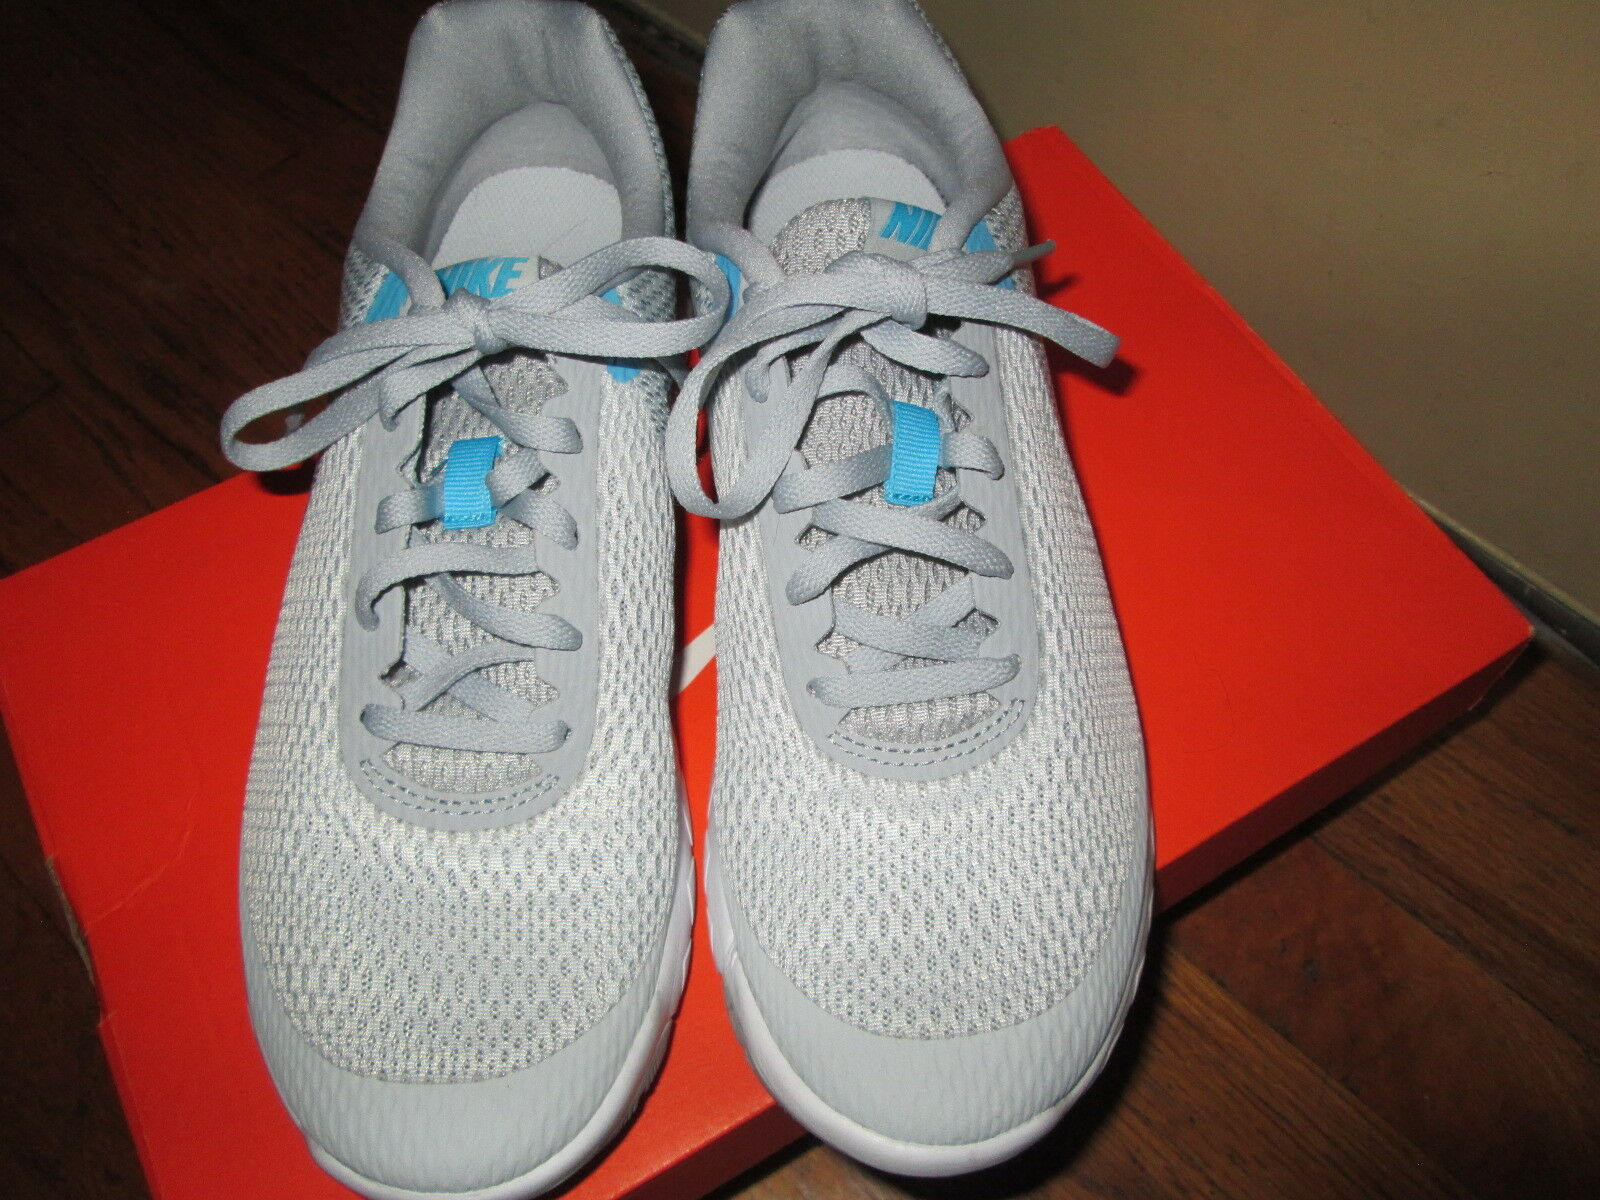 NIKE FLEX EXPERIENCE RN 6 WOMEN'S SIZE 8 SHOES 881805 011